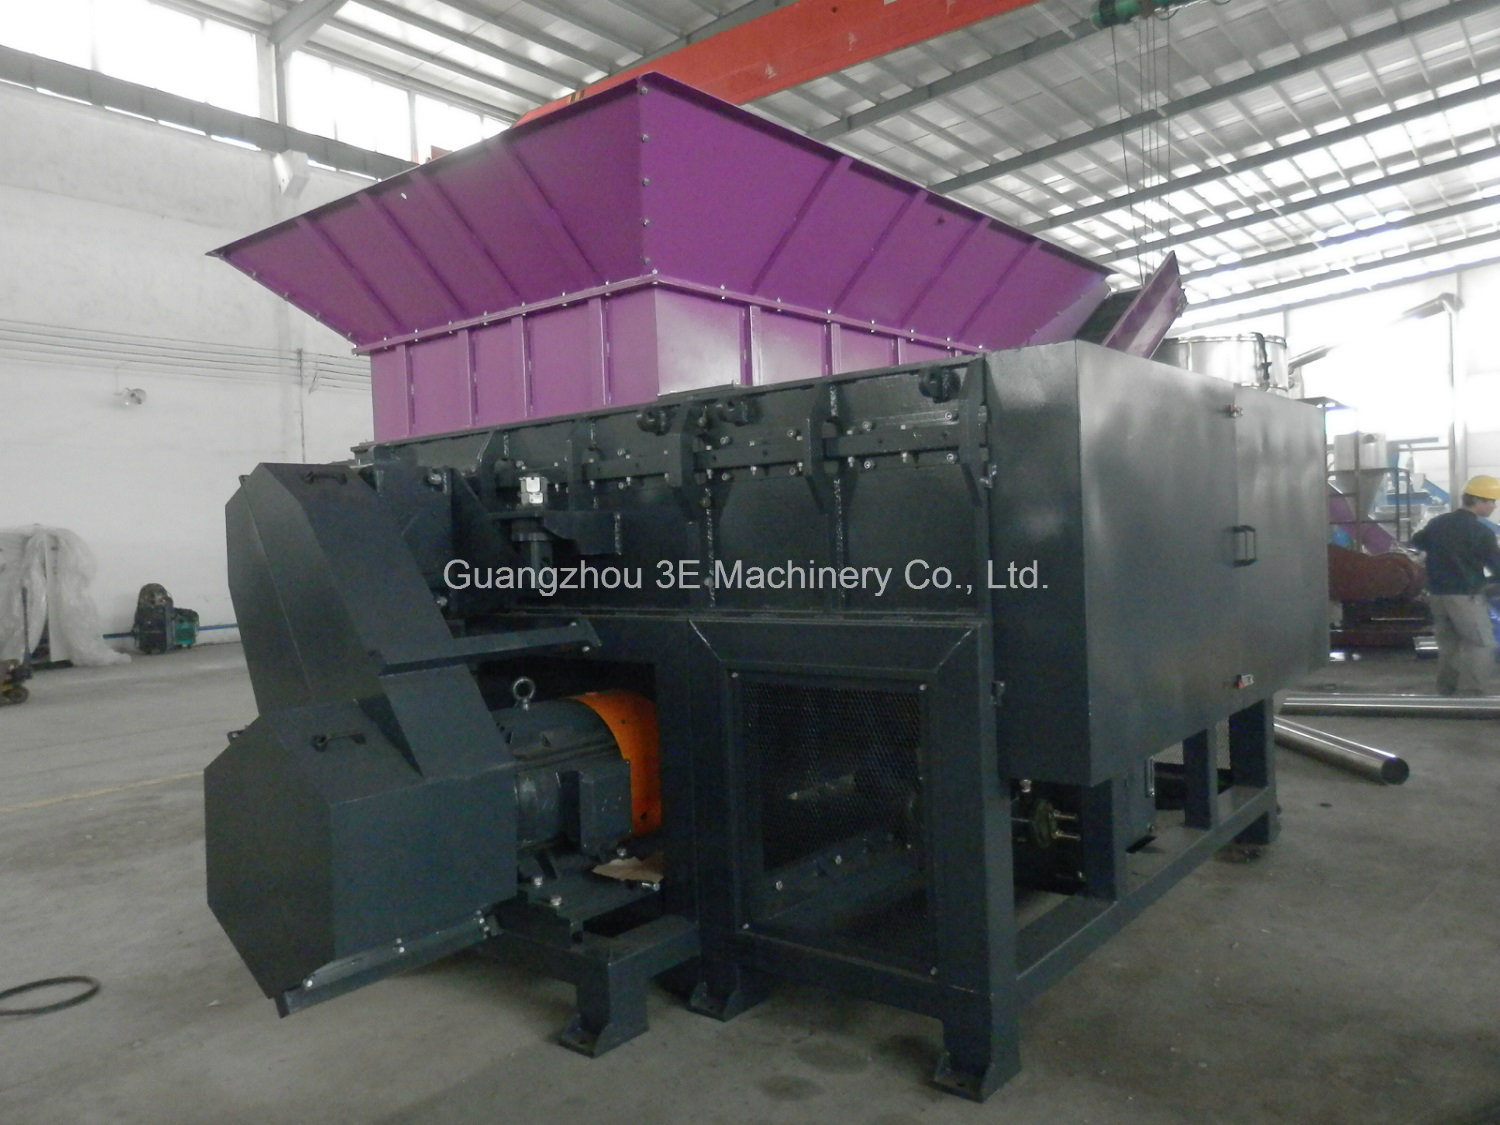 Plastic Shredder-Wt48 Series of Recycling Machine for Hard Plastic with Ce